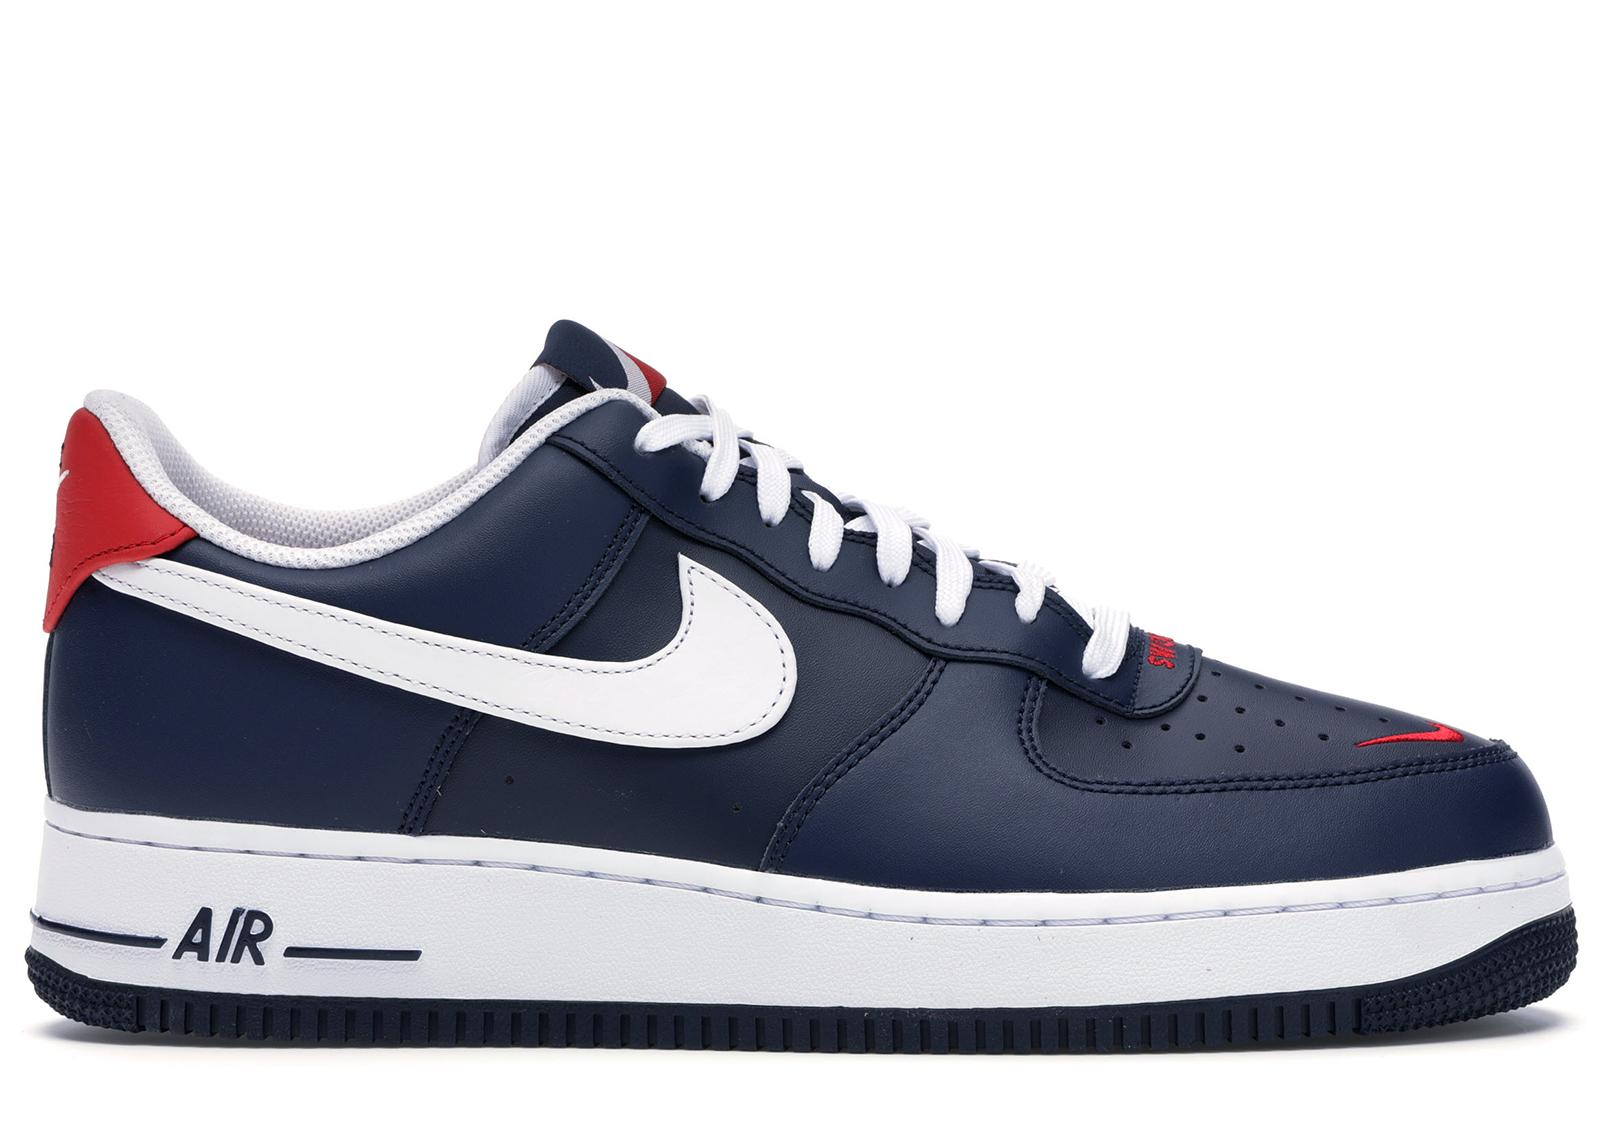 Nike Air Force 1 Low Swoosh Pack Navy In Blue For Men Save 13